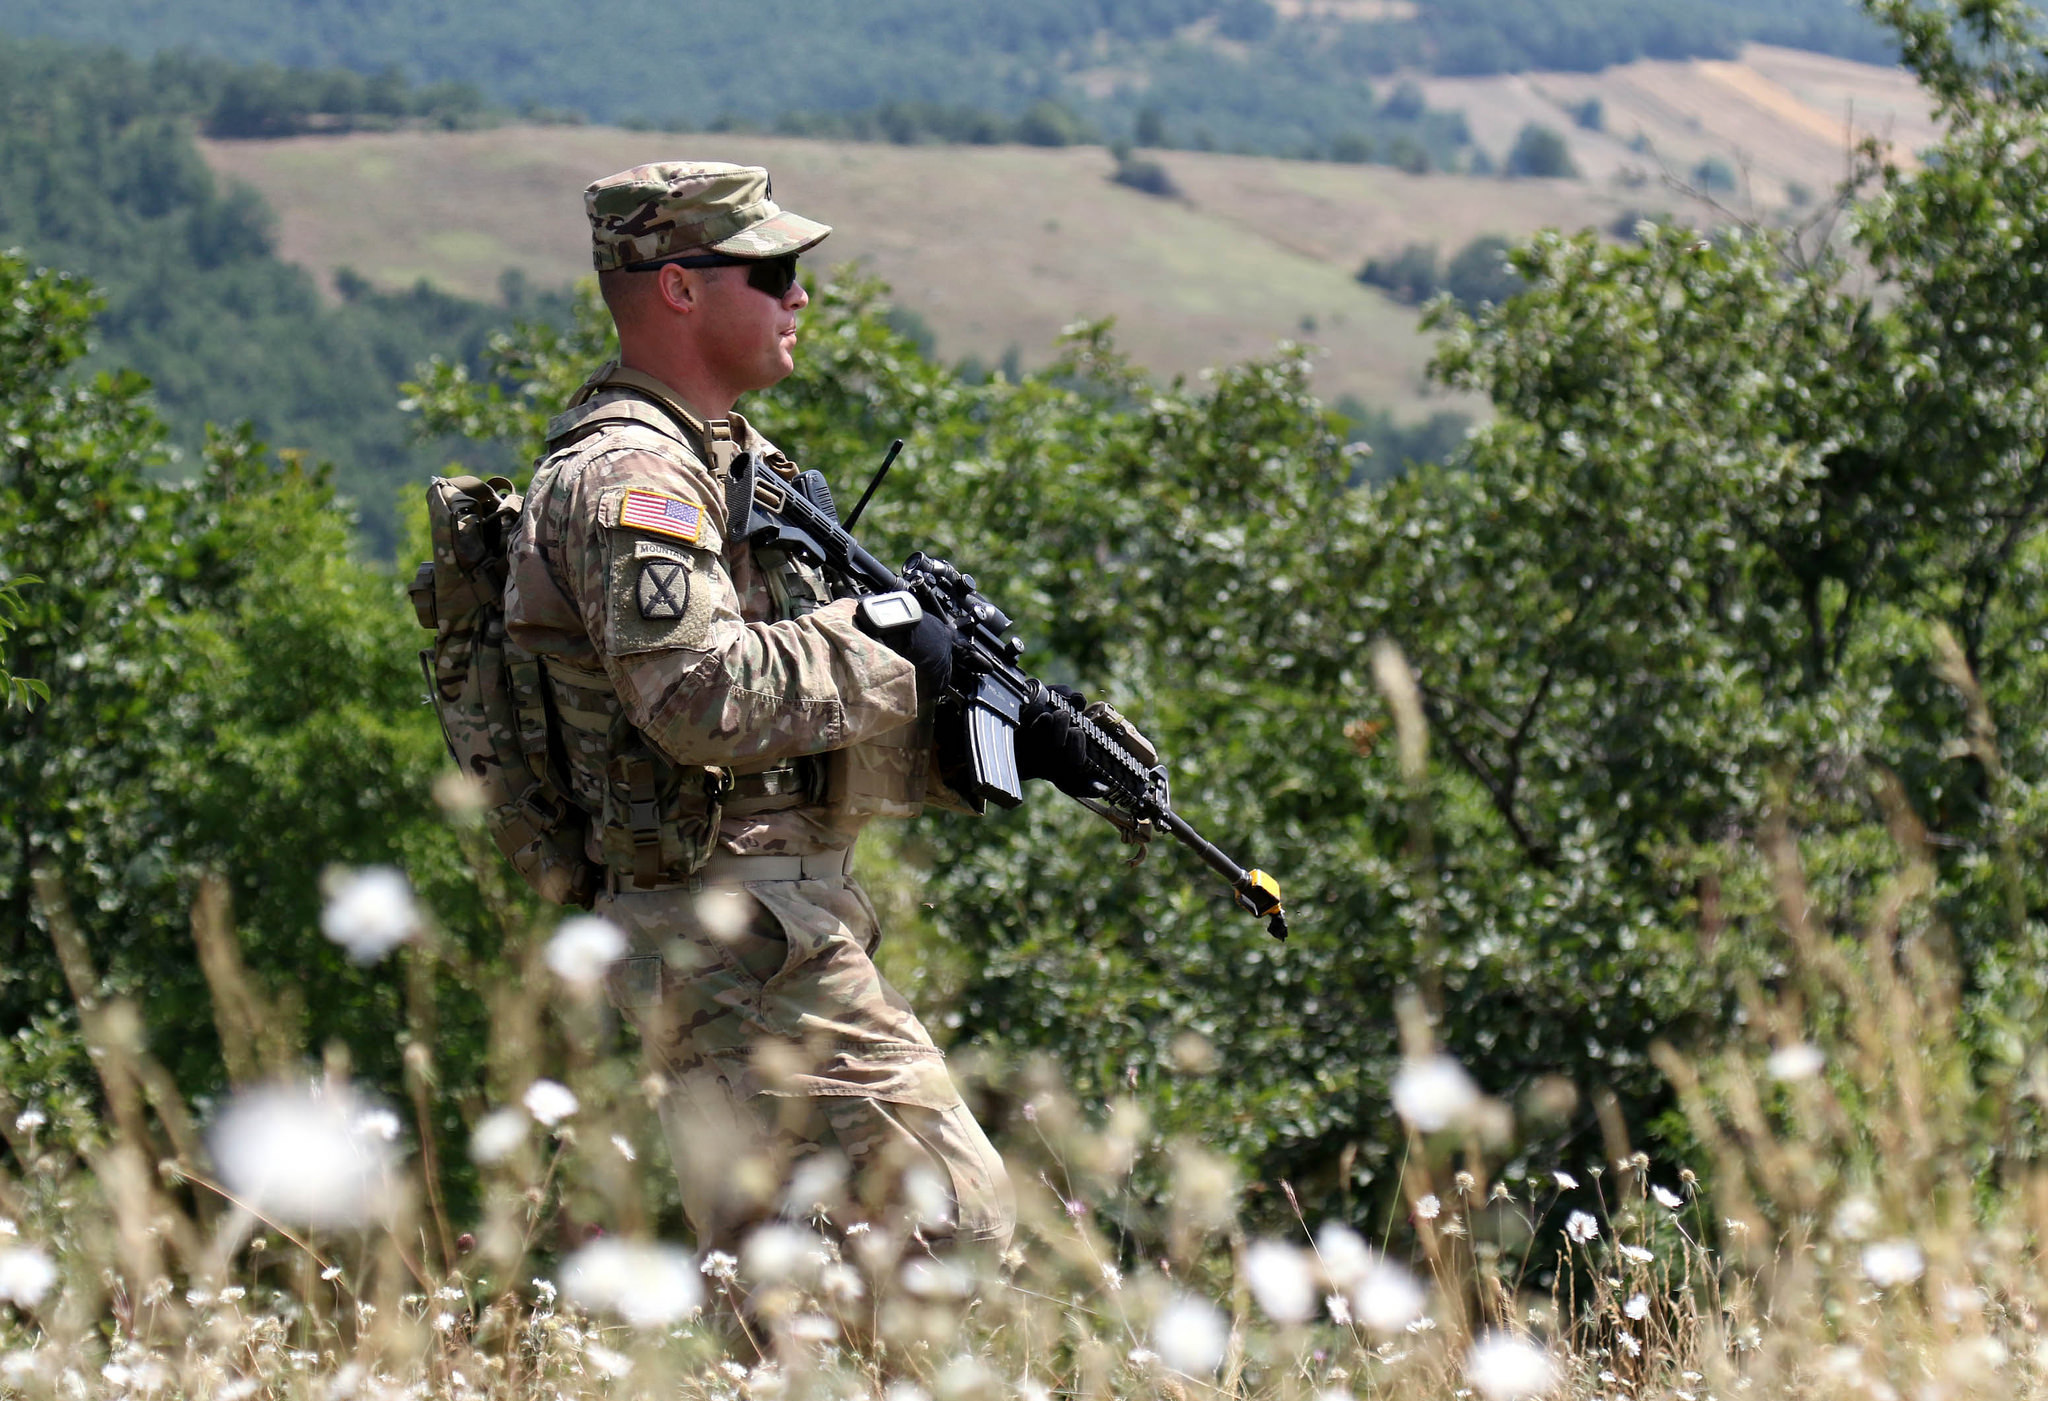 Staff Sgt. Daniel Dalton, squad leader with the 1st Battalion, 41st Infantry Regiment, 2nd Infantry Brigade Combat Team, patrols a ridge line during a squad-level situational training exercise held in Dumnice, Kosovo, July 25, 2016. The purpose of the exercise was to train individual squad movements in preparation for a larger scale operation deemed Iron Eagle, later this year. (U.S. Army photo by: Staff Sgt. Thomas Duval, Multinational Battle Group-East Public Affairs)